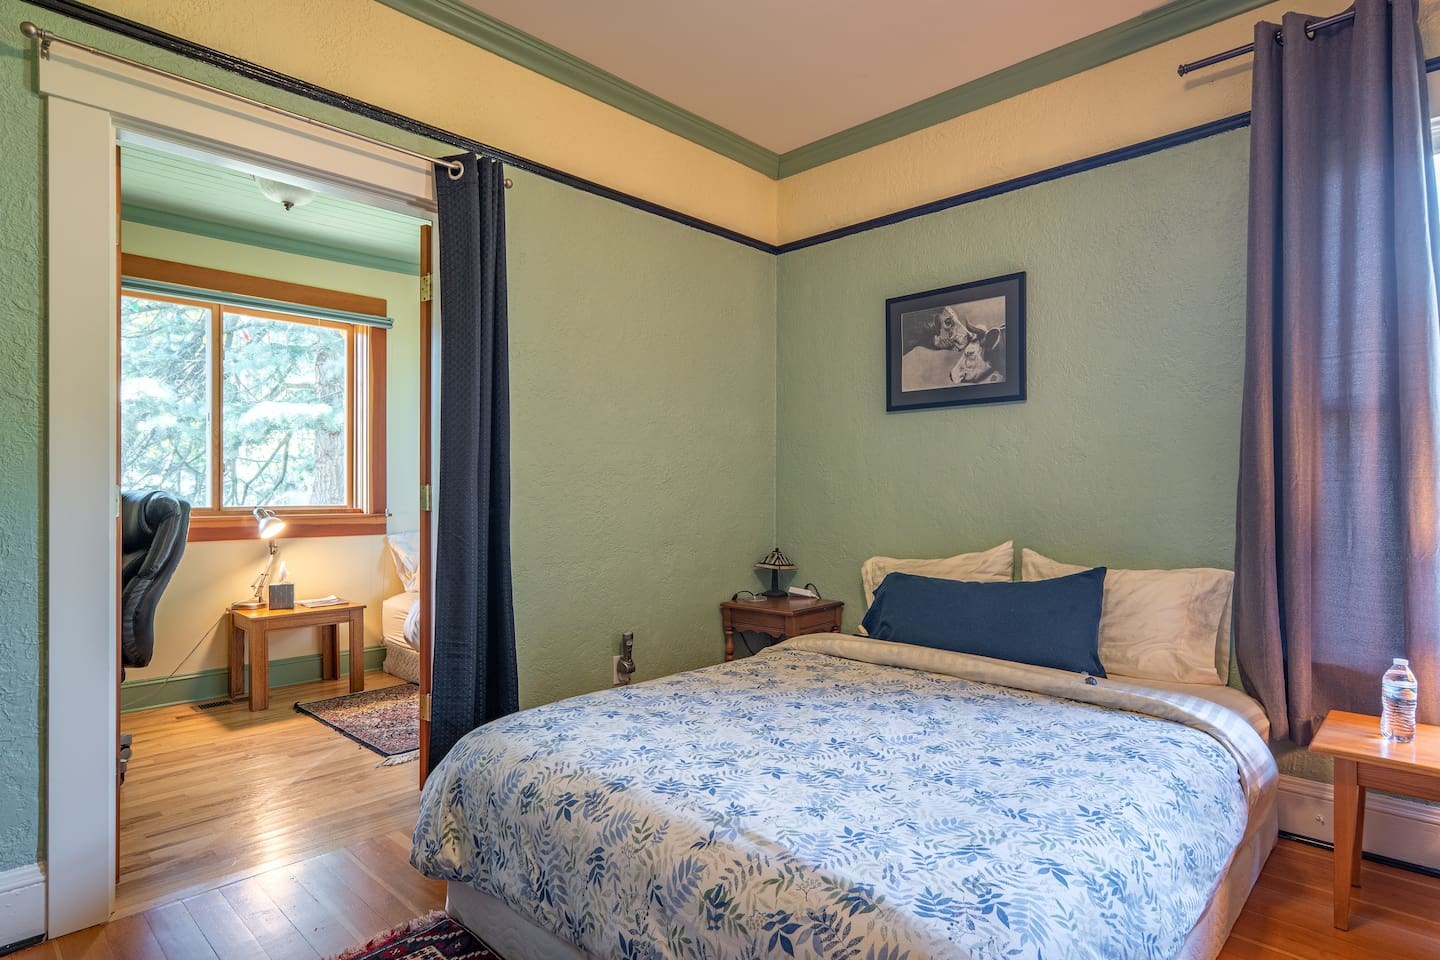 Smaller room has french doors, a privacy curtain & a TwinXL bed (not shown in this photo)